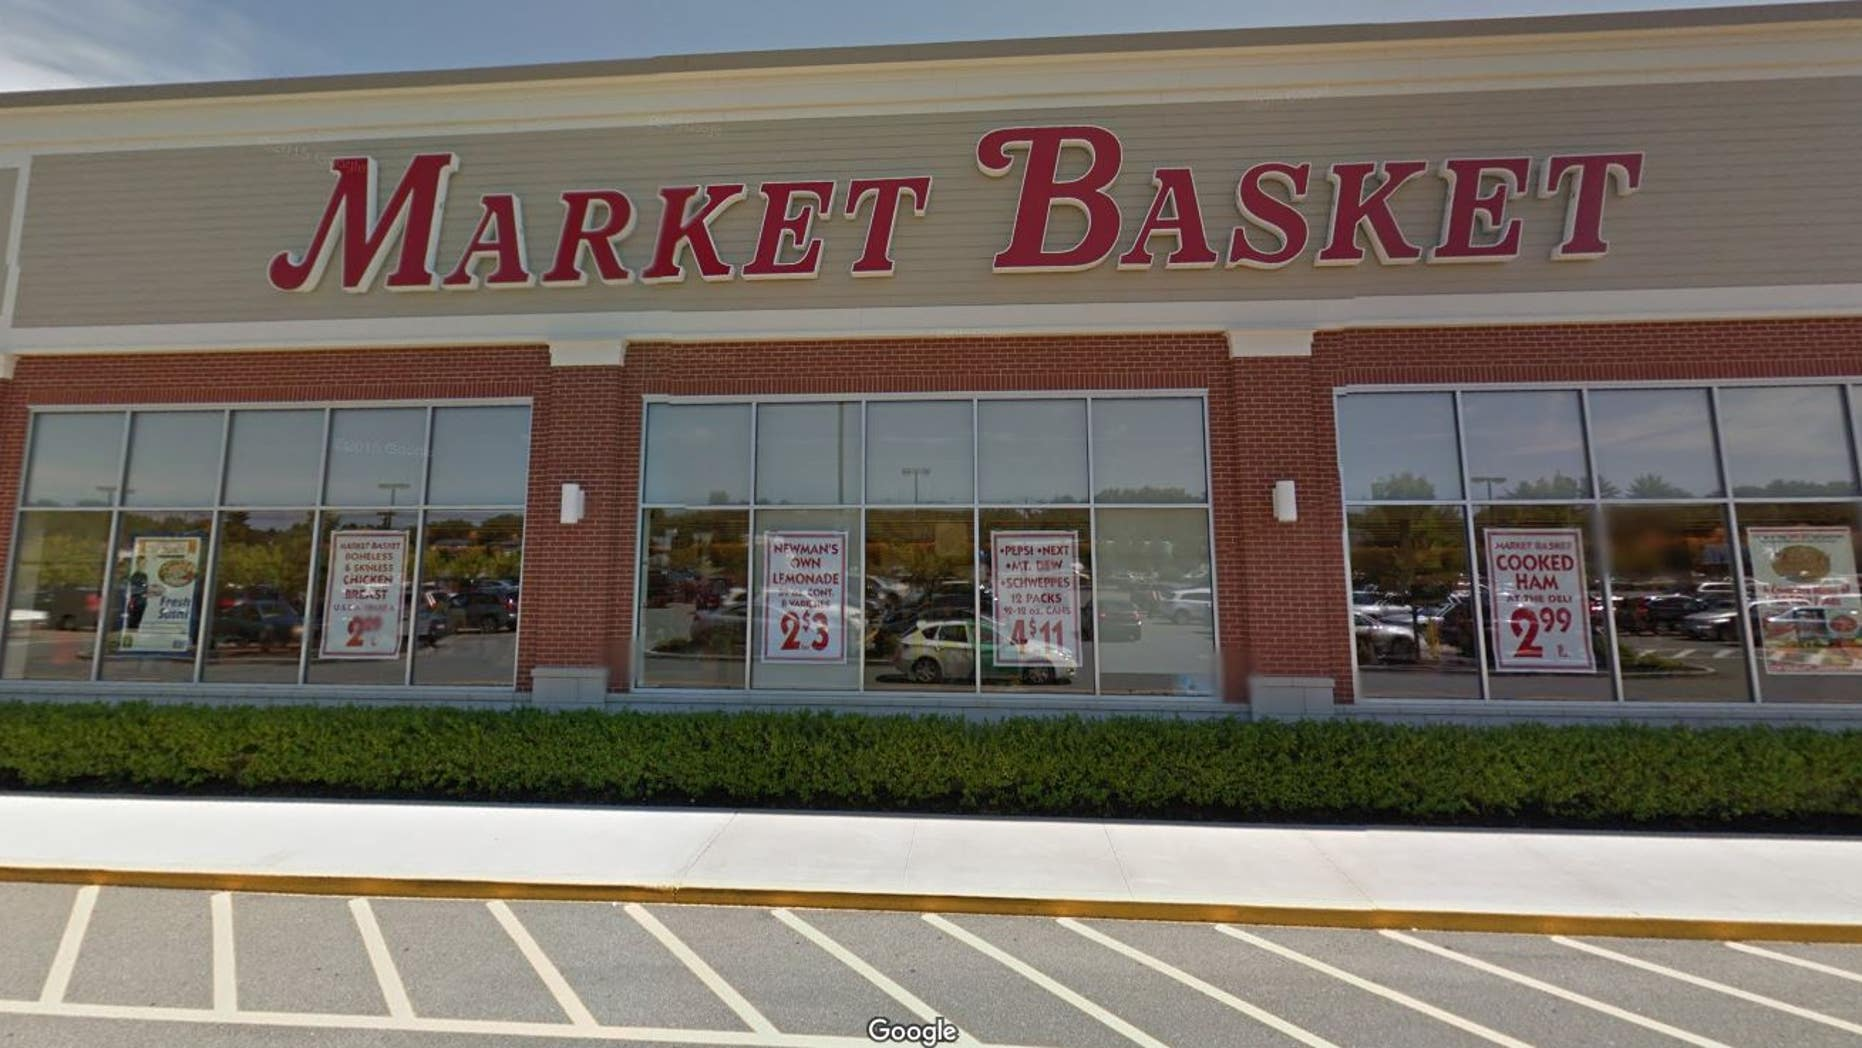 Market Basket claims that they have no spirits in their supermarket.